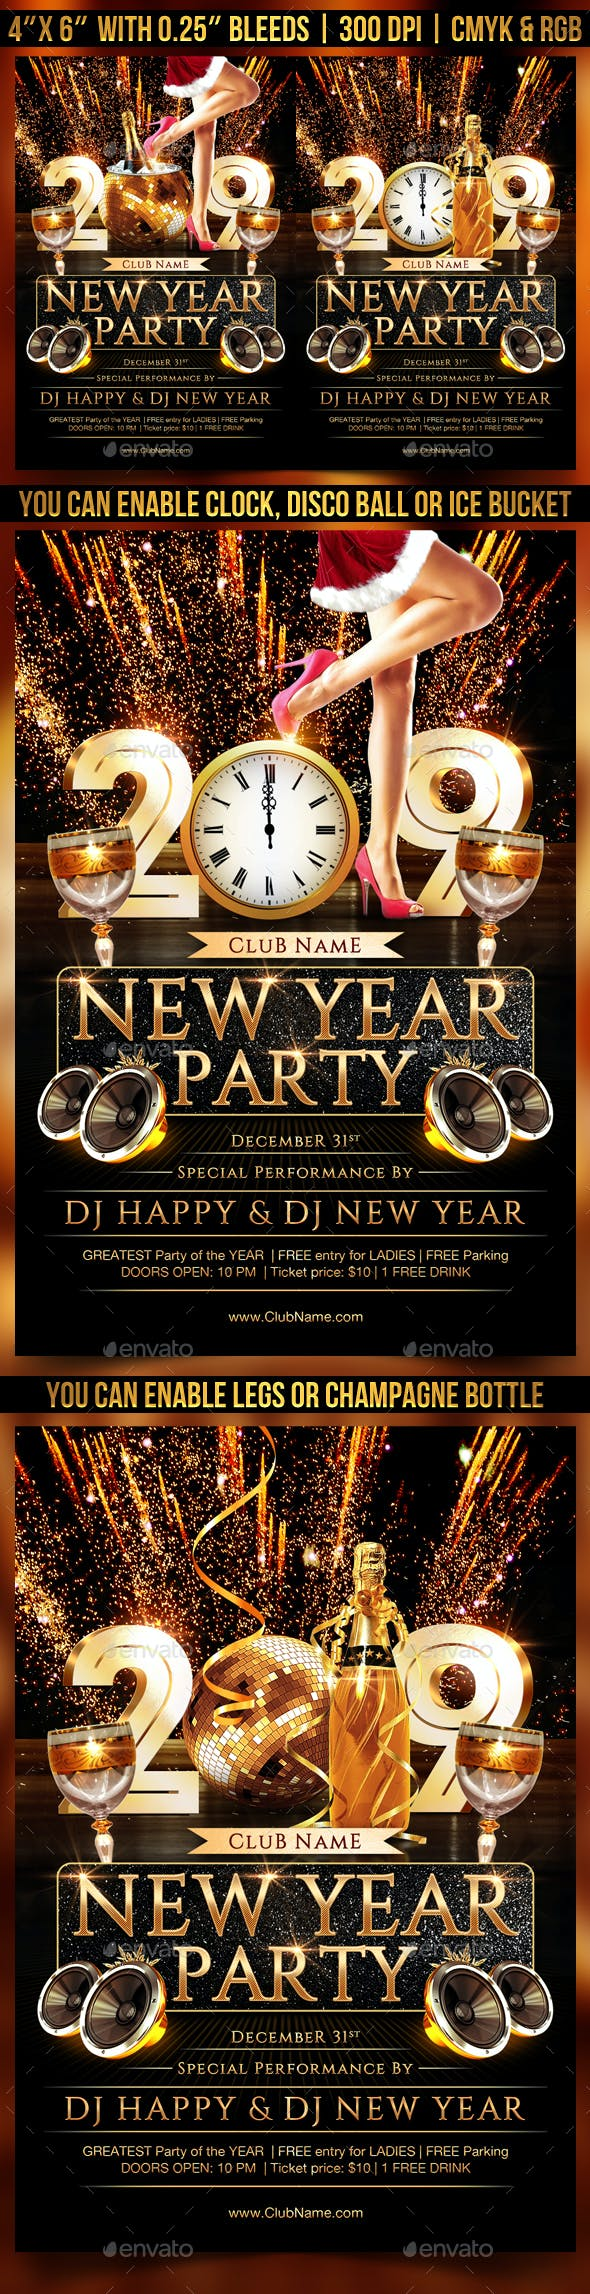 new year party flyer template by gugulanul graphicriver